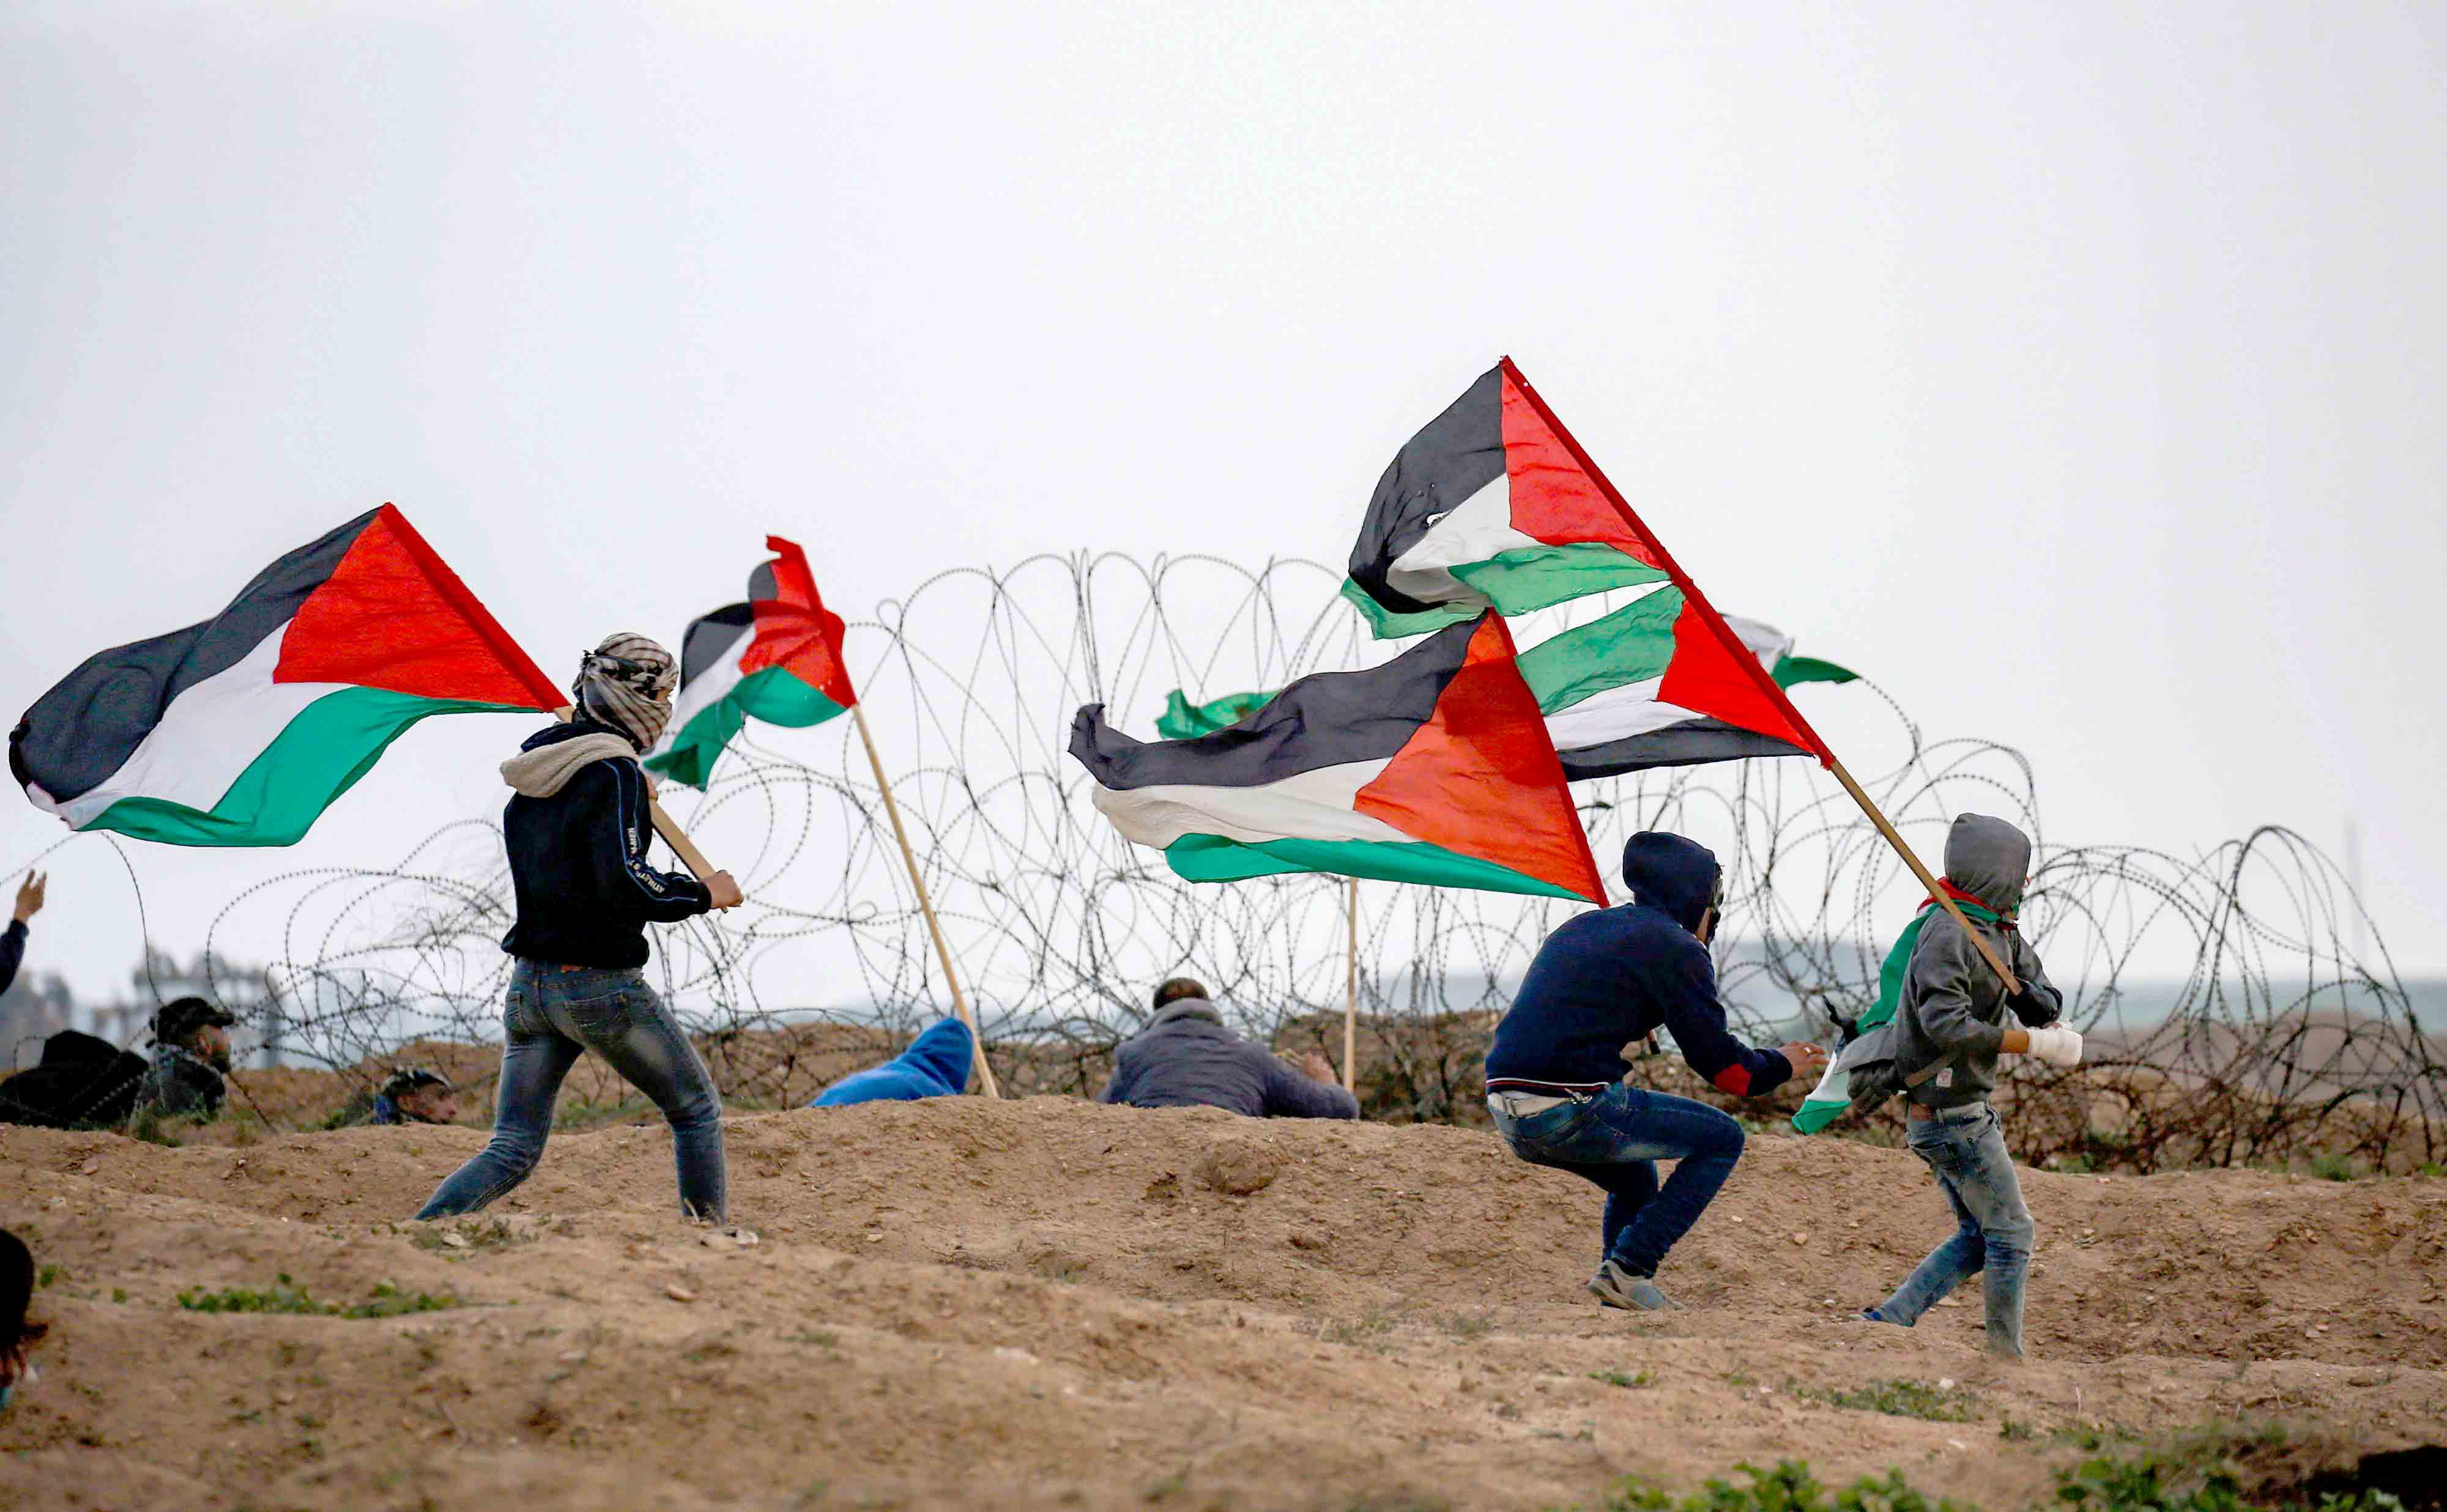 Palestinian youth run carrying Palestinian flags by the barbed wire fence along the border with Israel east of Gaza City, December 7. (AFP)